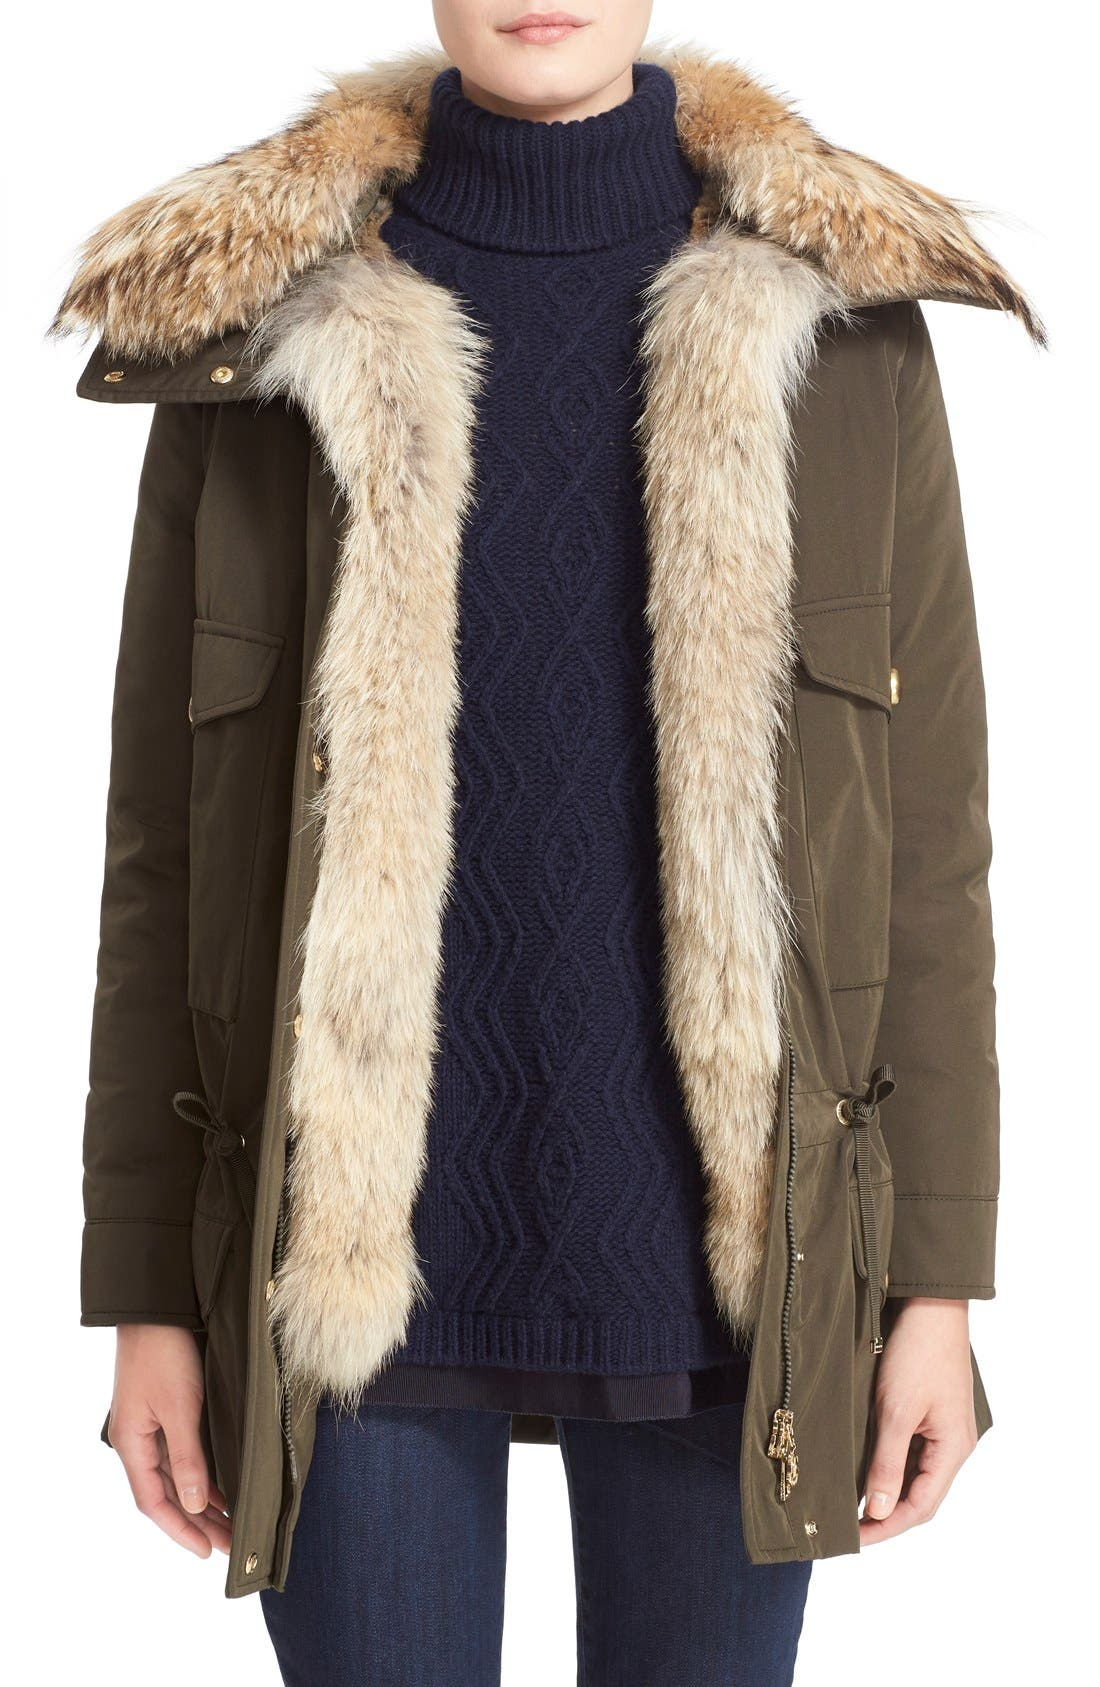 'Margarita' Down Jacket with Removable Genuine Coyote Collar and Rabbit Fur Vest,                         Main,                         color, 307